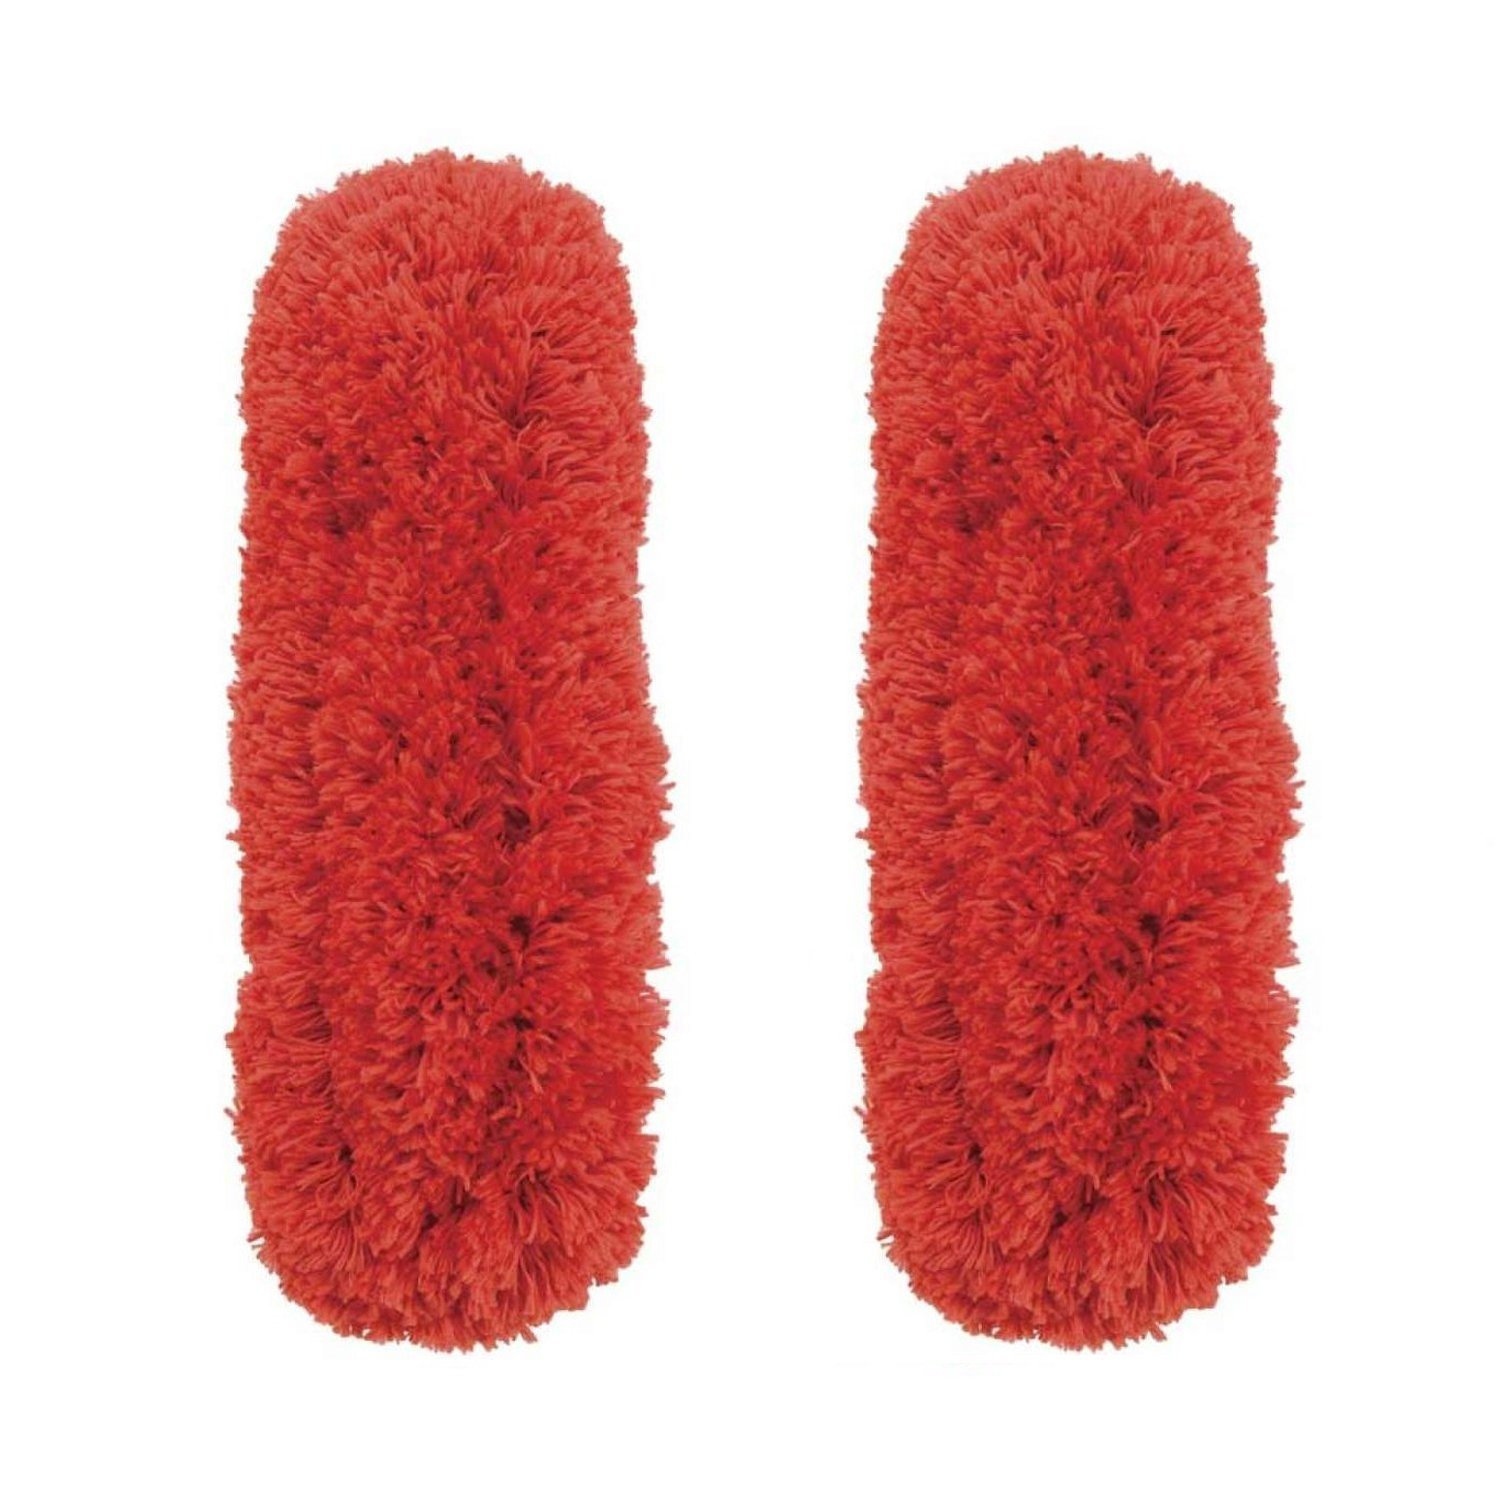 OXO Good Grips Microfiber Duster Refill (2 Pack),Red No Model